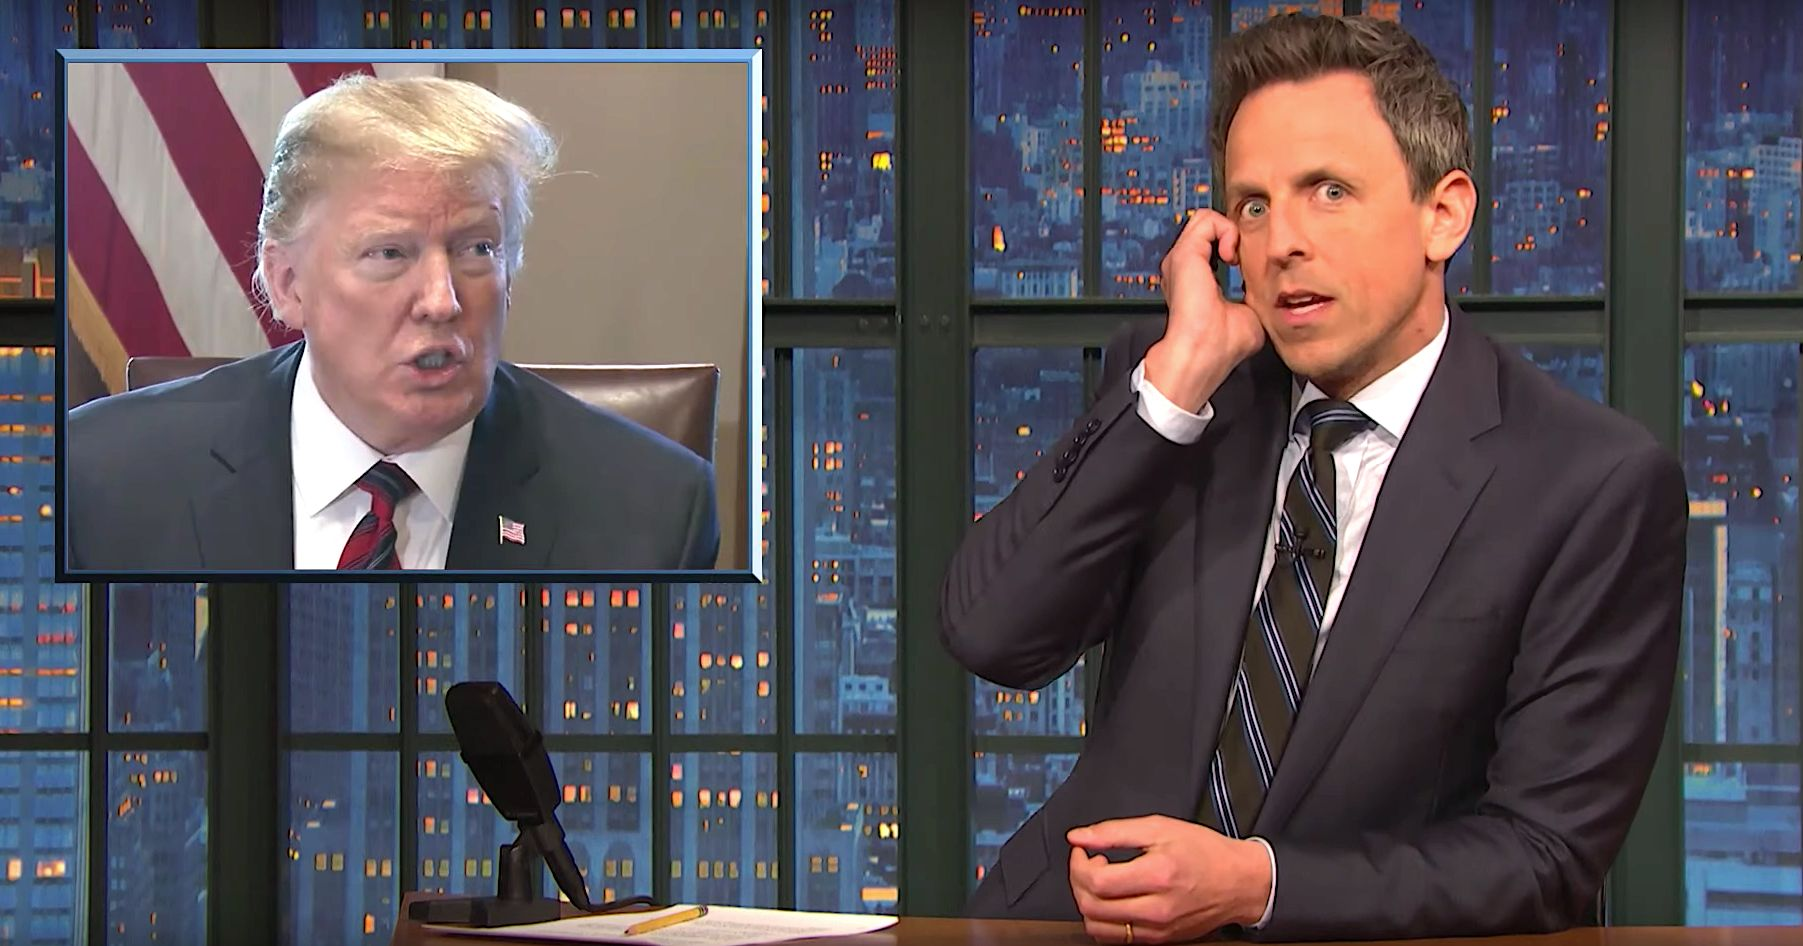 Seth Meyers Reveals Donald Trump's Oval Office Antics During Shutdown